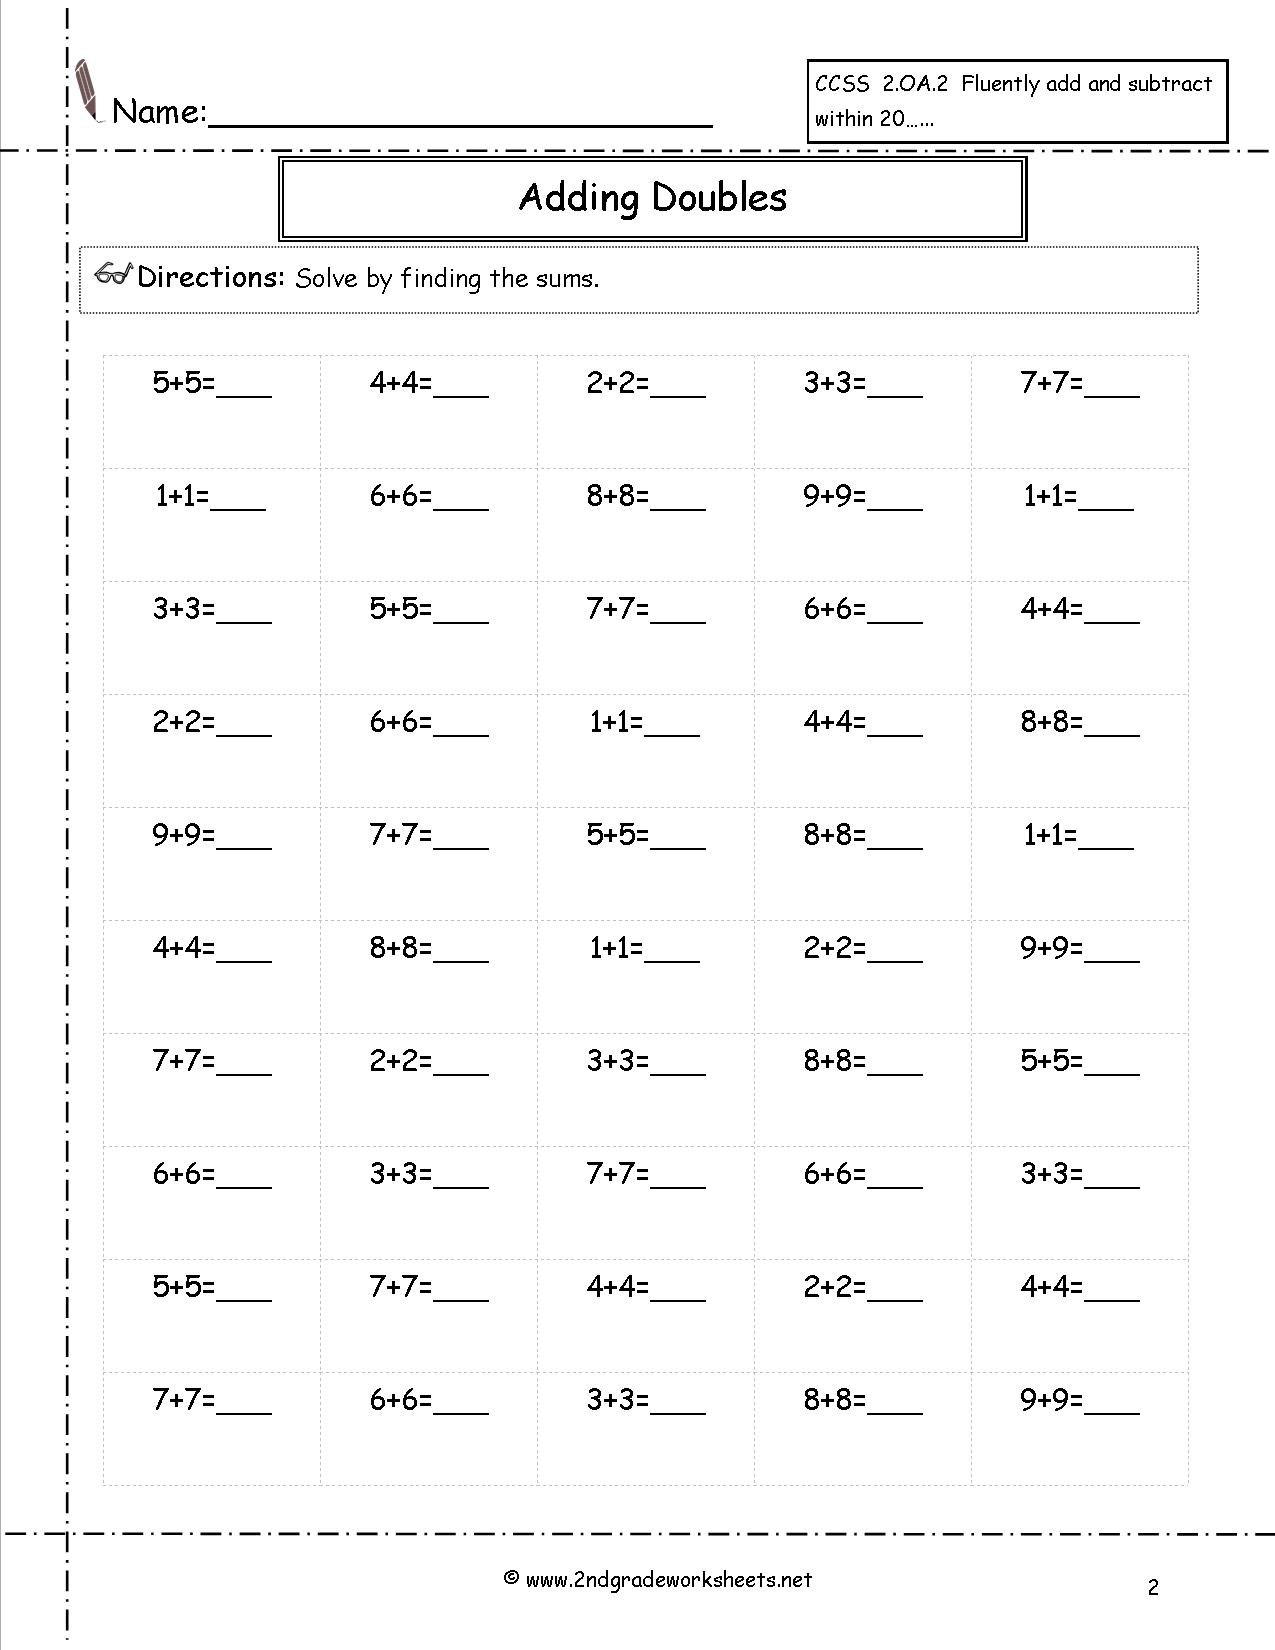 11 Best Images Of Addition To 20 Worksheets